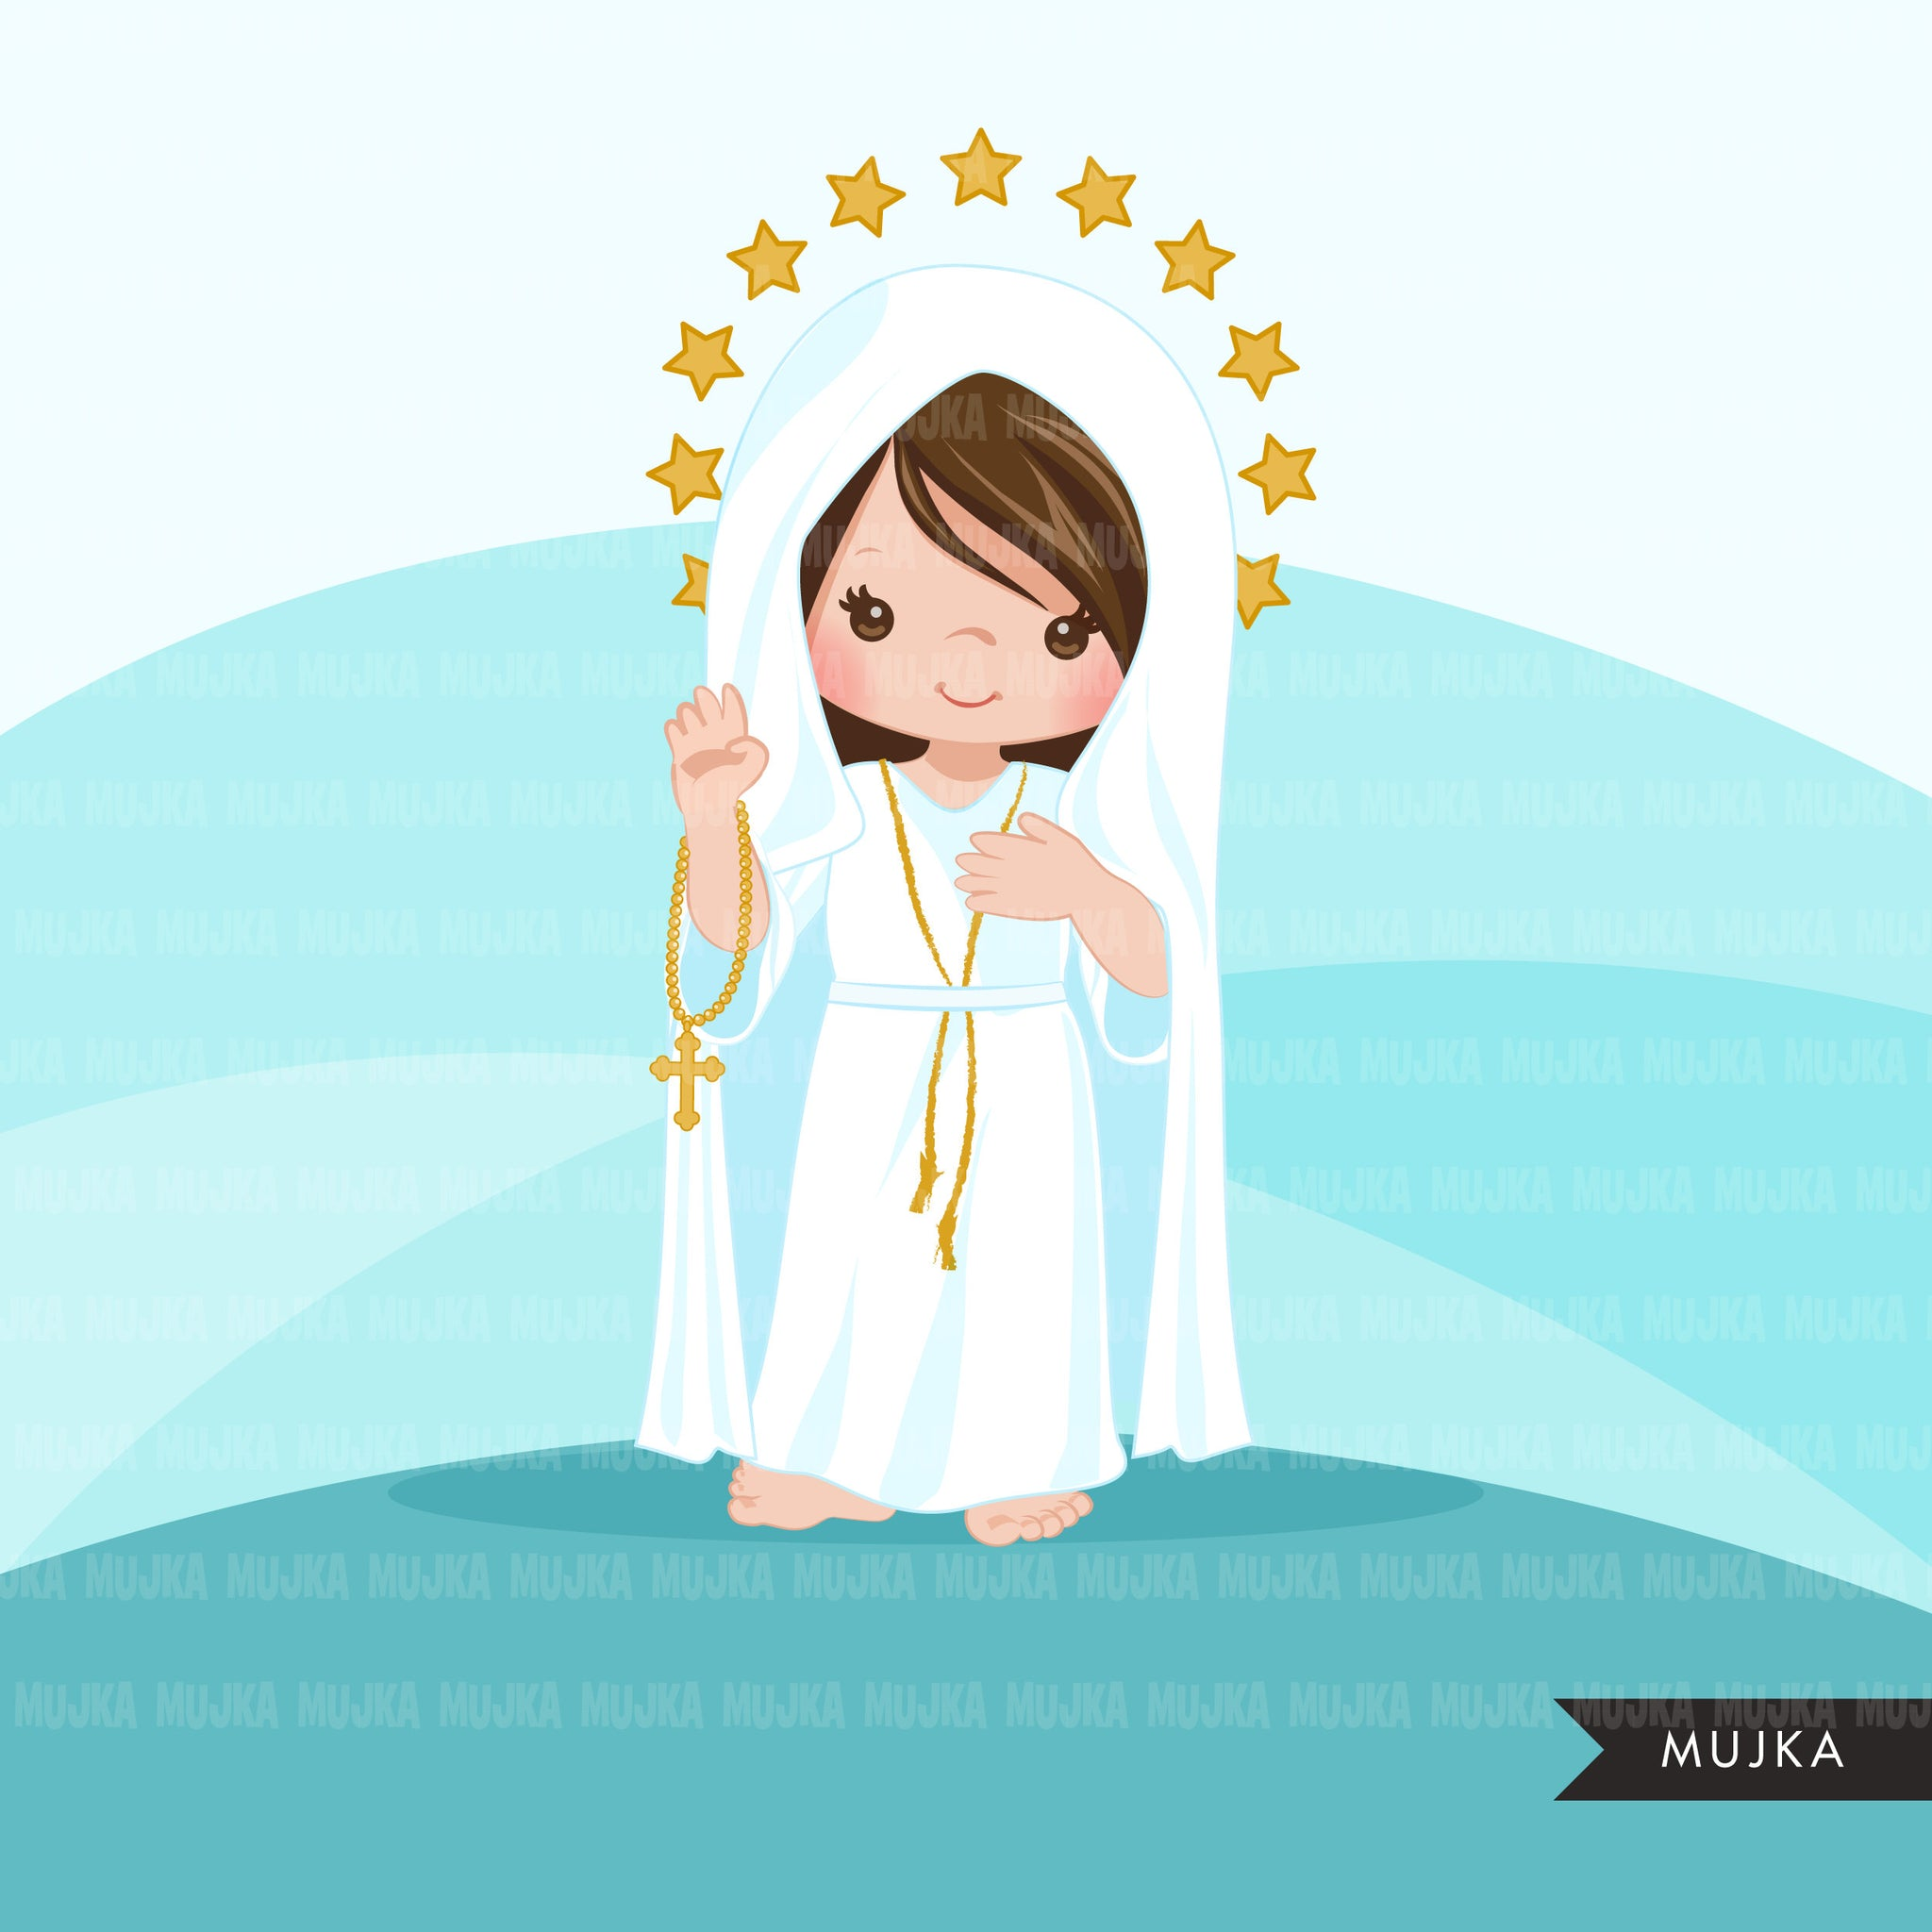 Our Lady of Fatima clipart, Saint religious sublimation designs digital download, catholic design, Christian png file for cricut, png